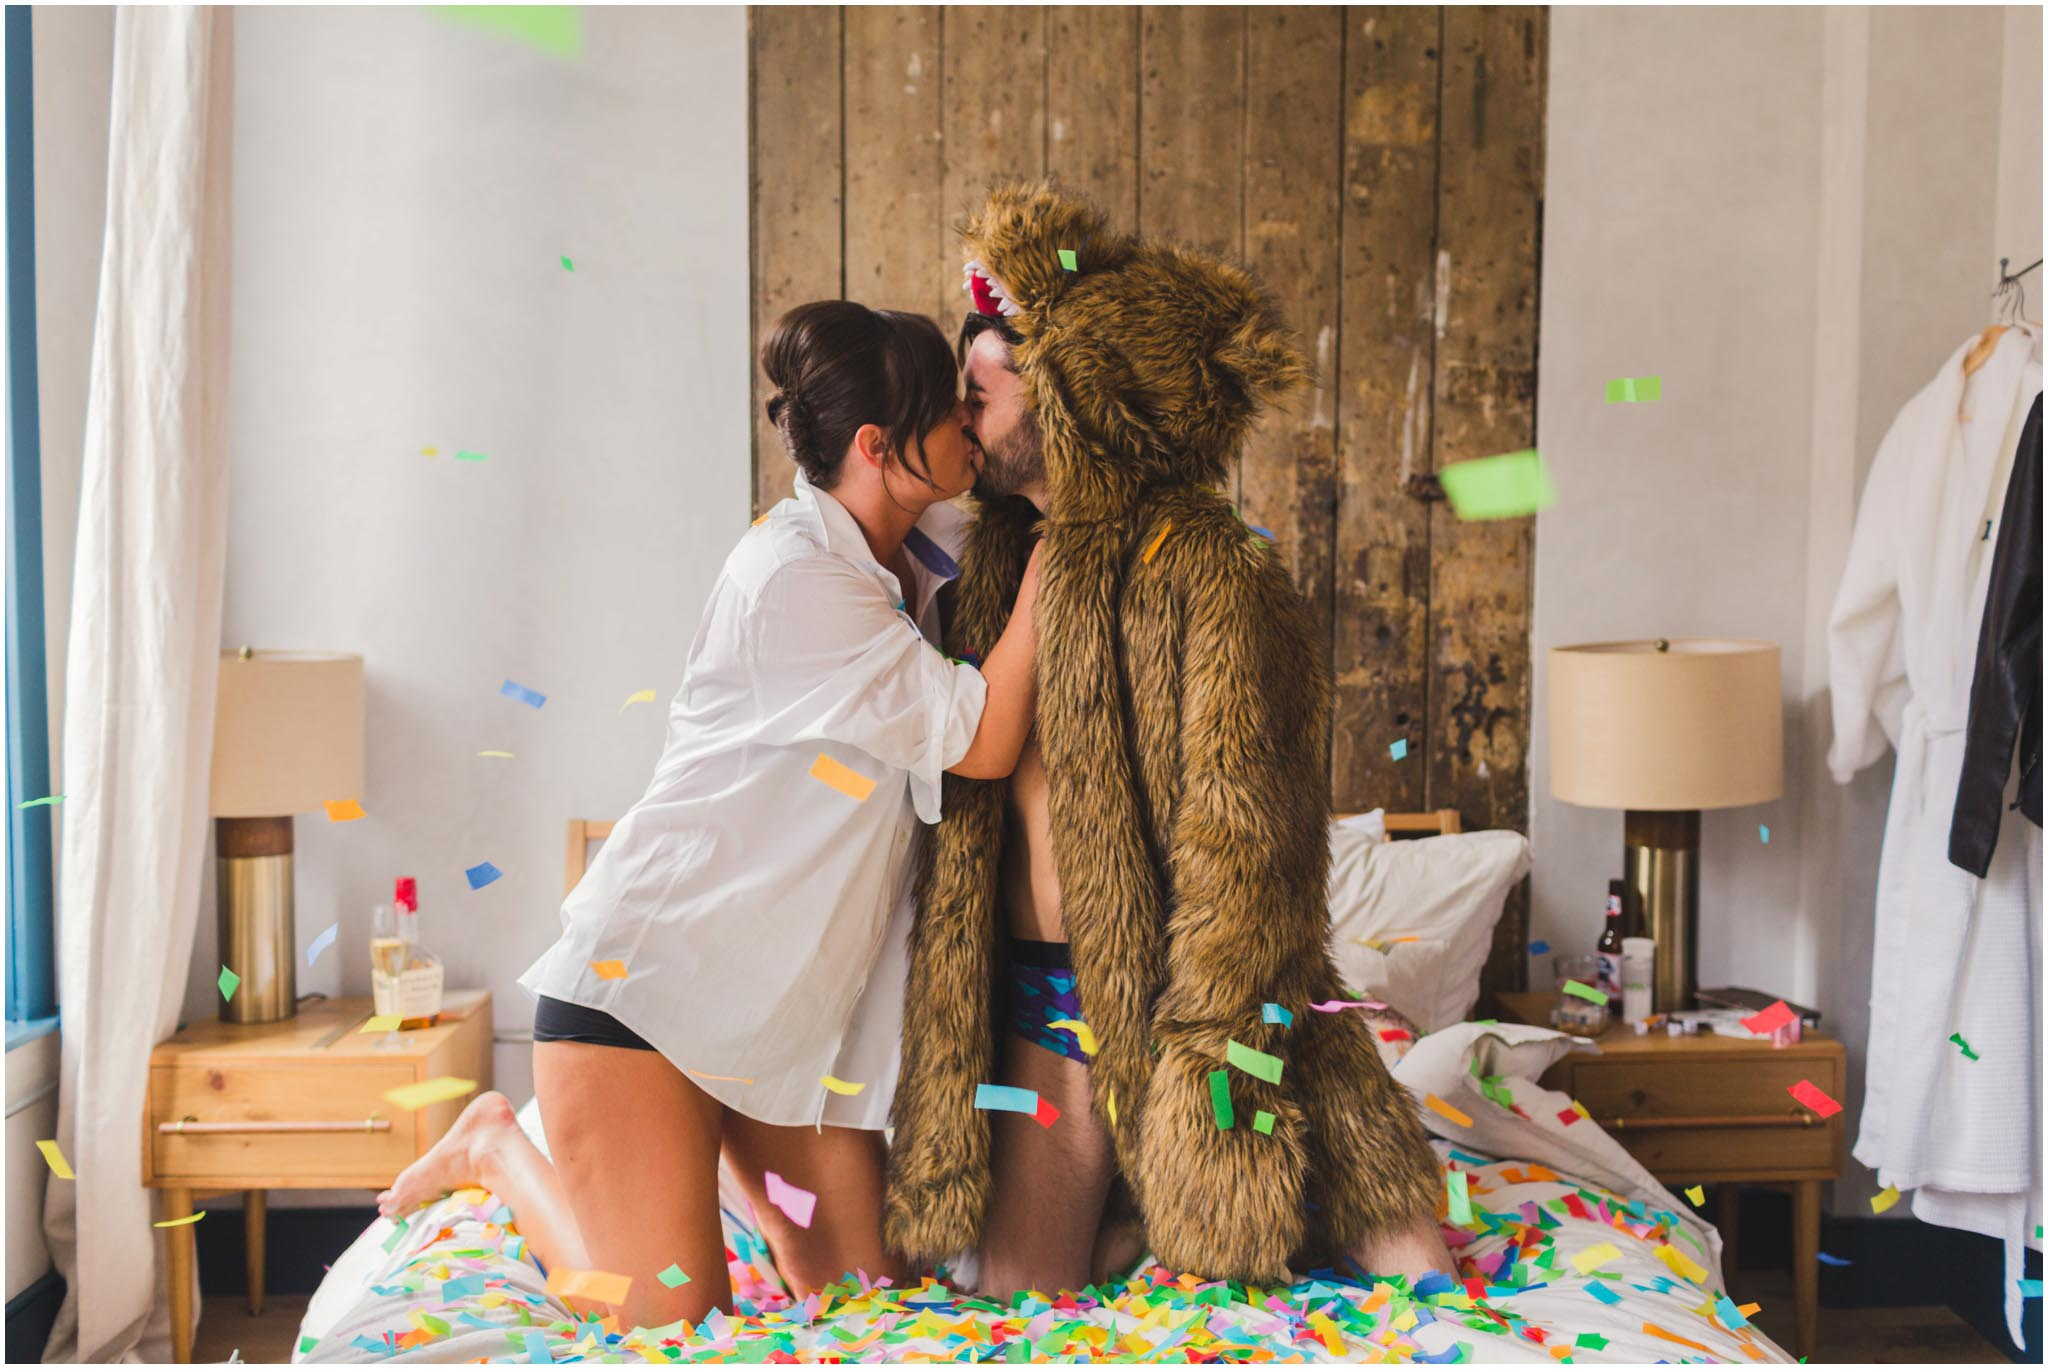 workaholics, bear coat, confetti